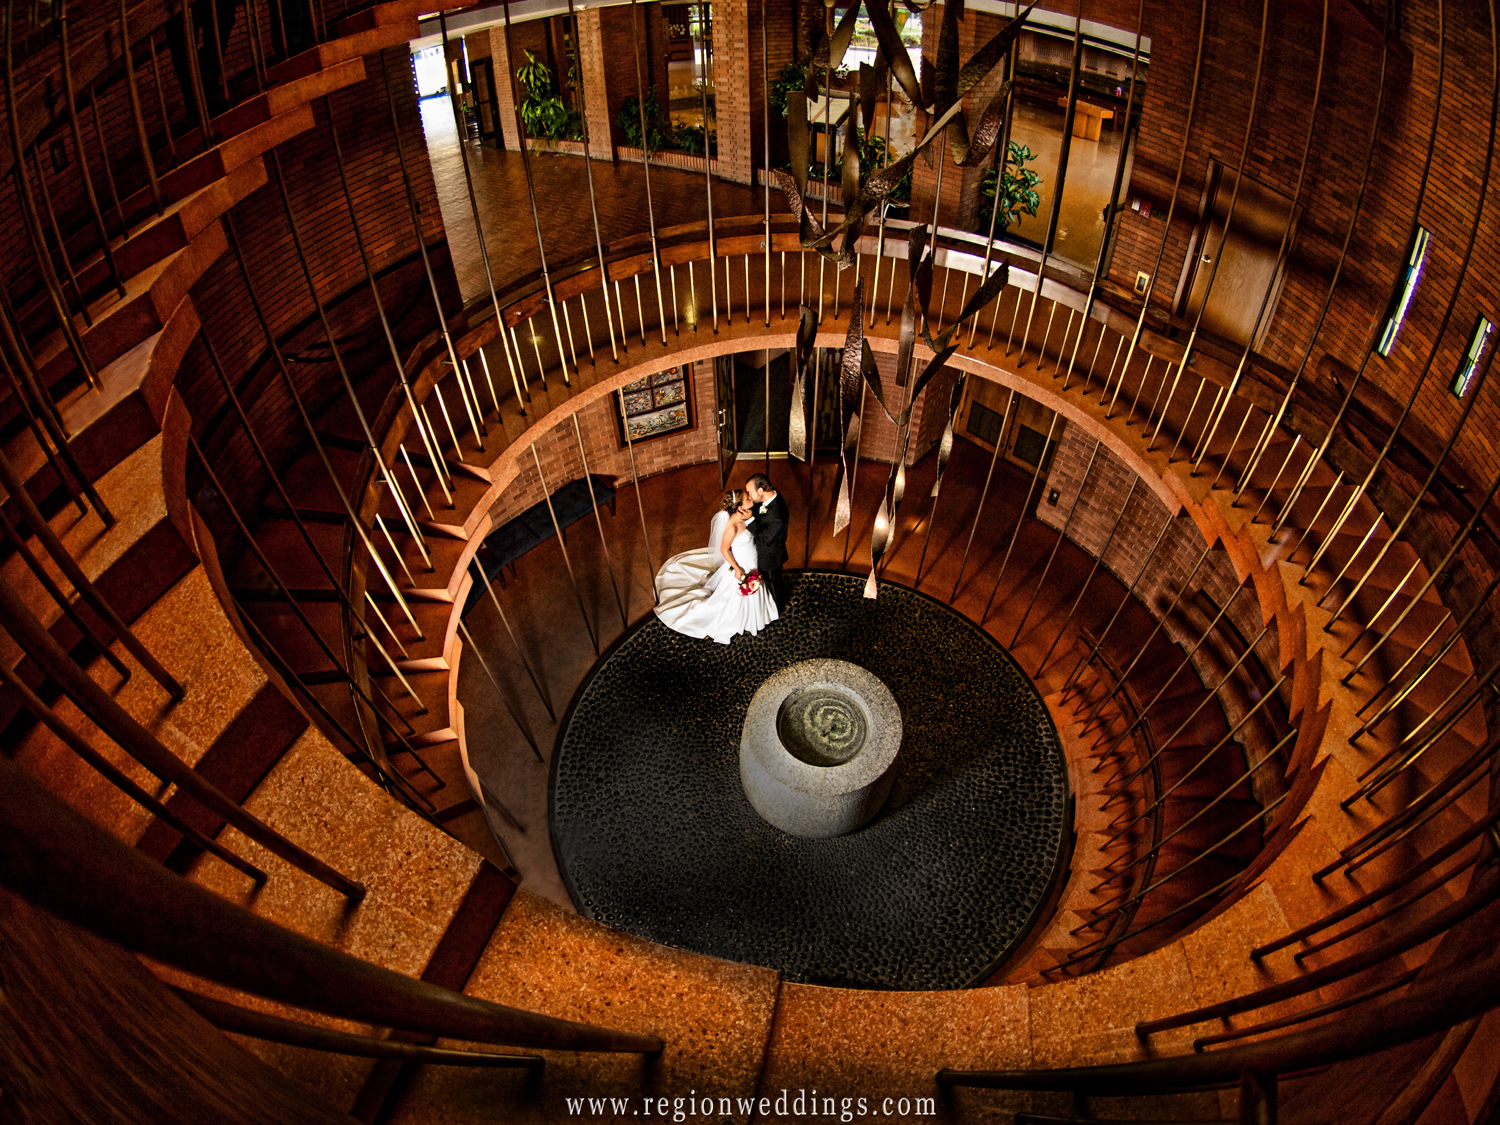 The spiral staircase at Valparaiso University's Chapel of the Resurrection.